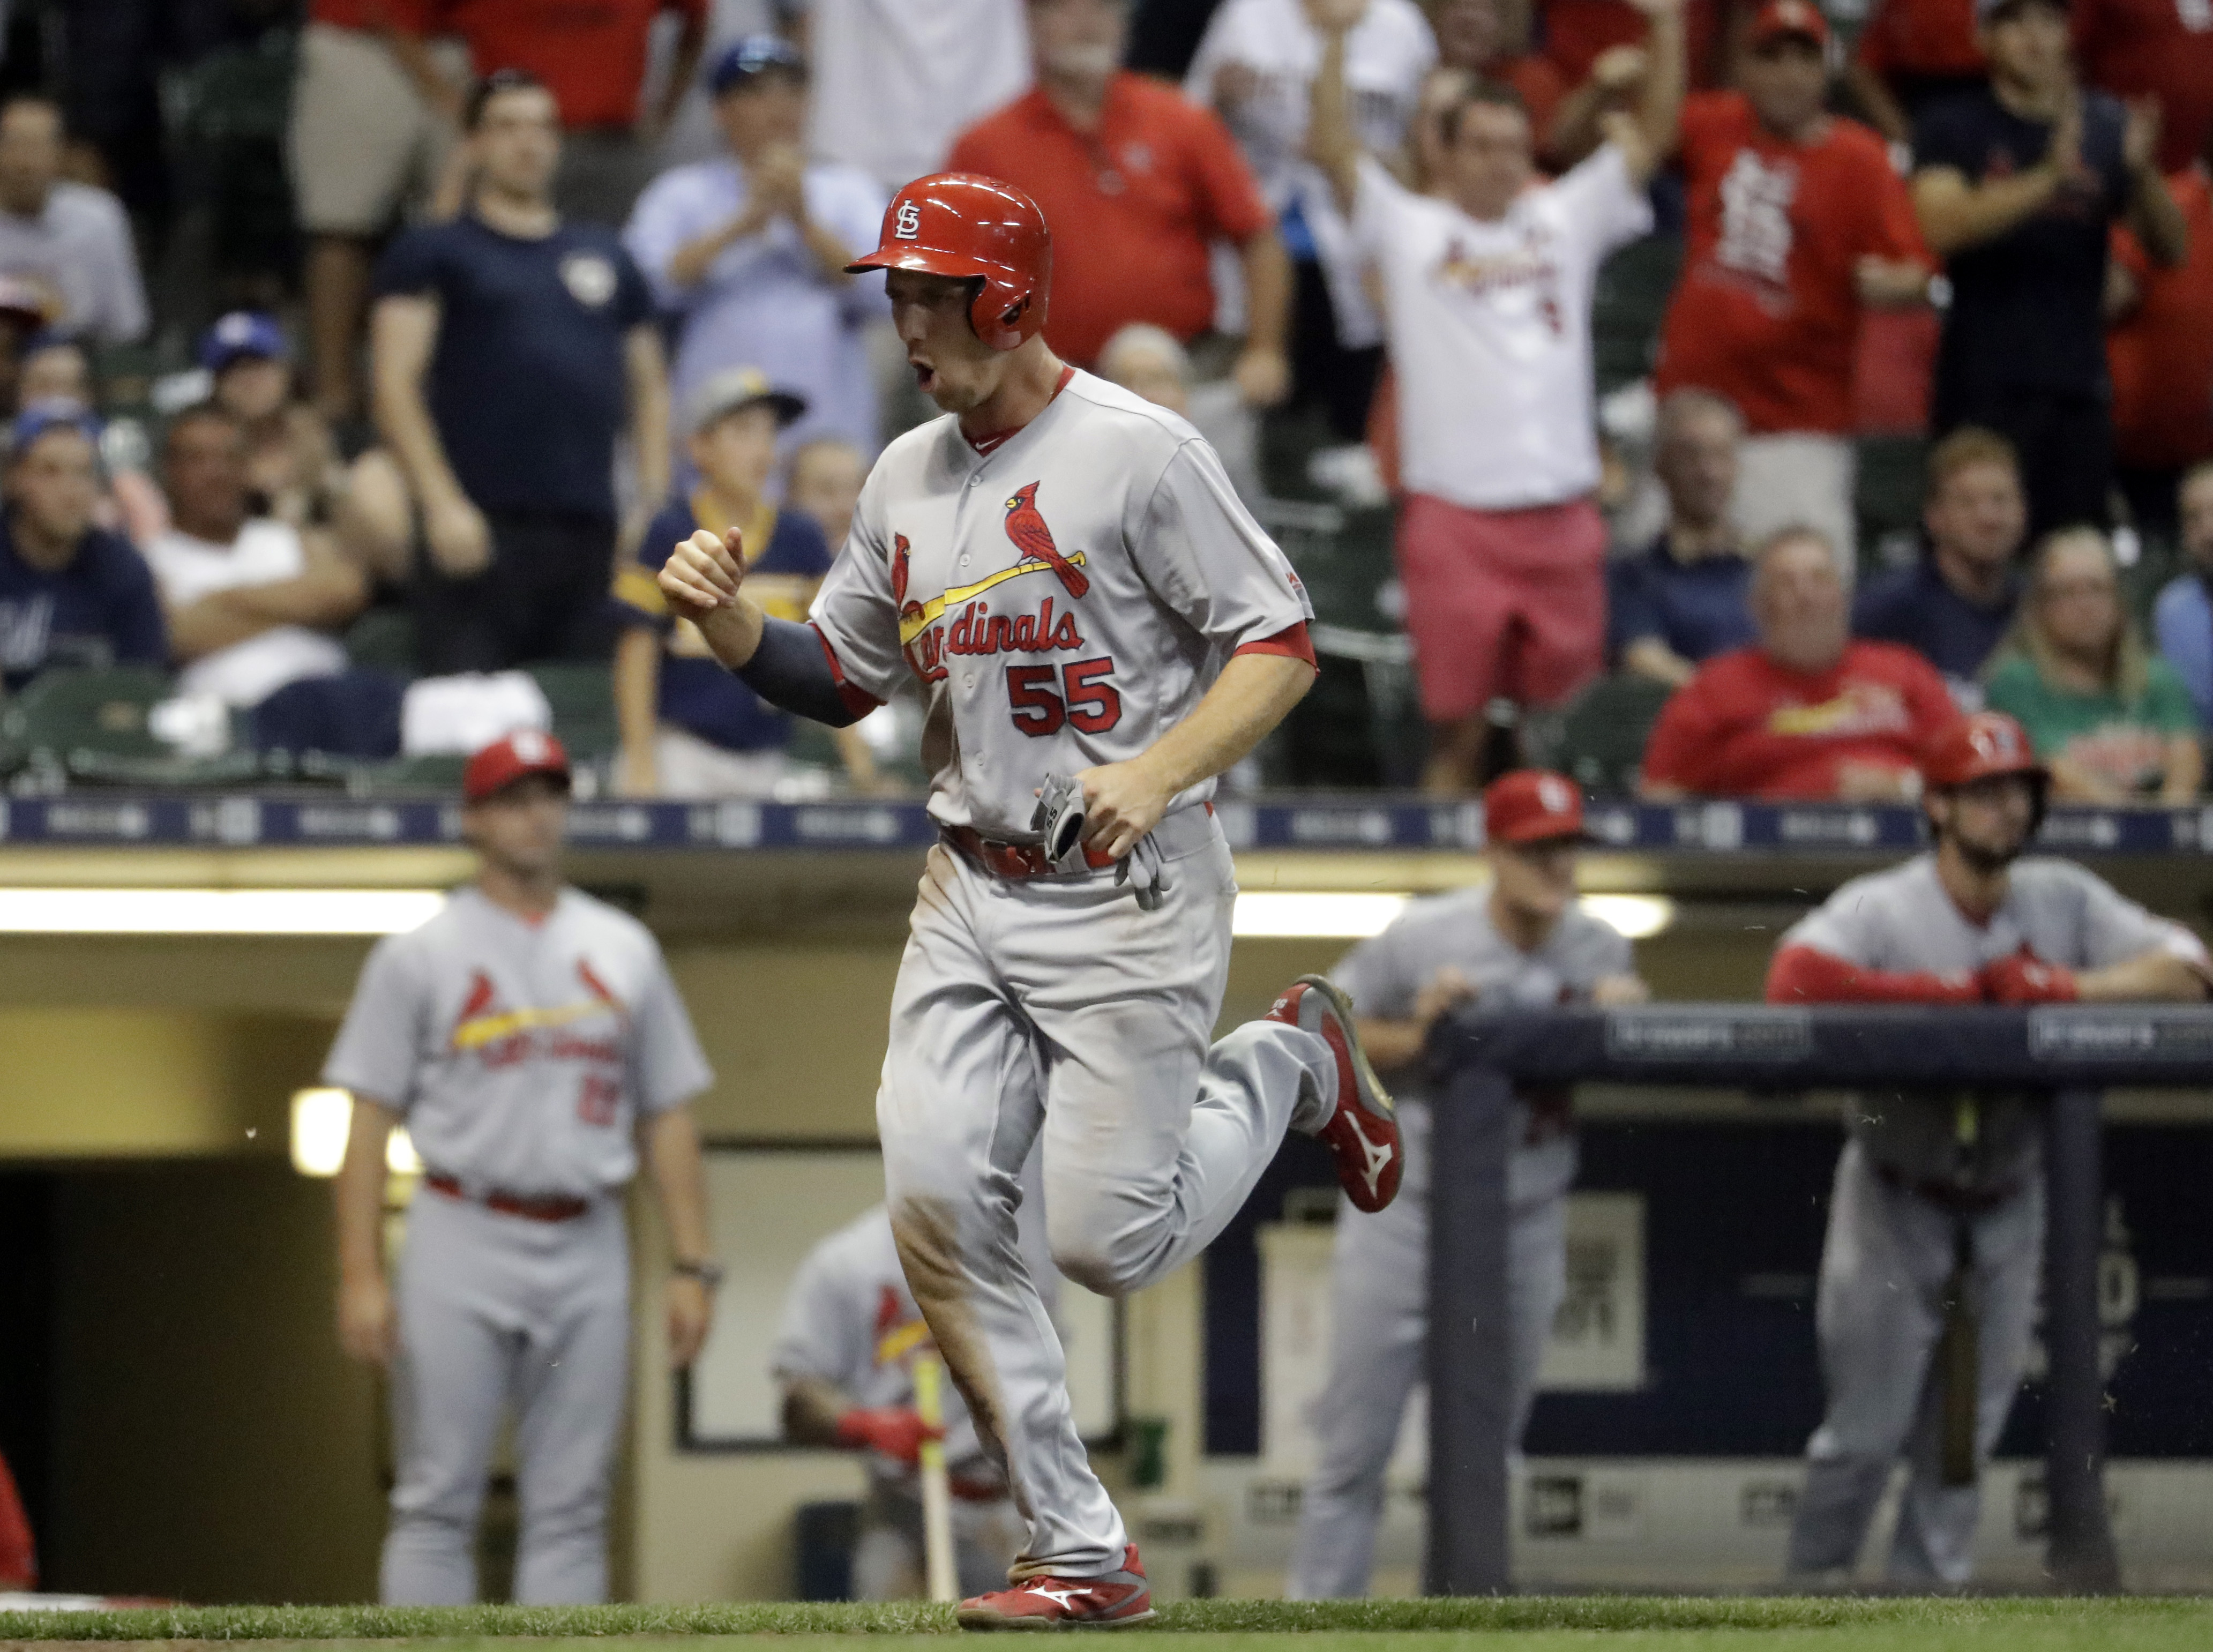 St. Louis Cardinals' Stephen Piscotty reacts as he scores from second on a wild throw on a bunt by Yadier Molina during the ninth inning of a baseball game against the Milwaukee Brewers Monday, Aug. 29, 2016, in Milwaukee. (AP Photo/Morry Gash)